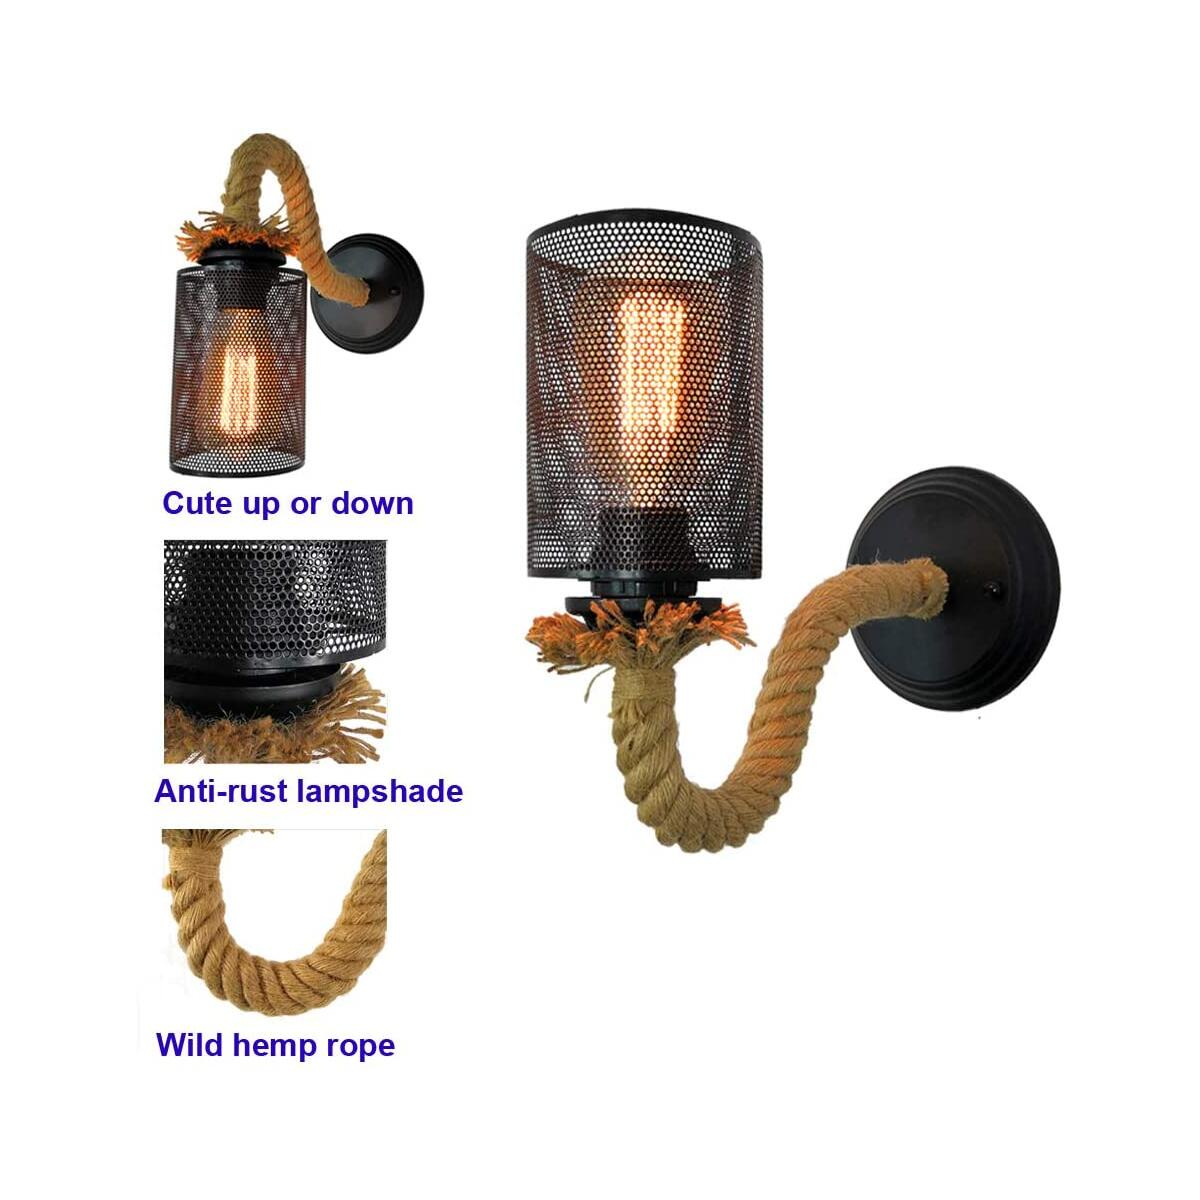 Vintage Farmhouse Wall Sconces Set of 2, Rustic Industrial Sconces Wall Lighting Fixture with Black Cage Shade & Hemp Rope, Indoor Wall Lamps & Sconces for Bedroom Bar Cellar Porch Garage